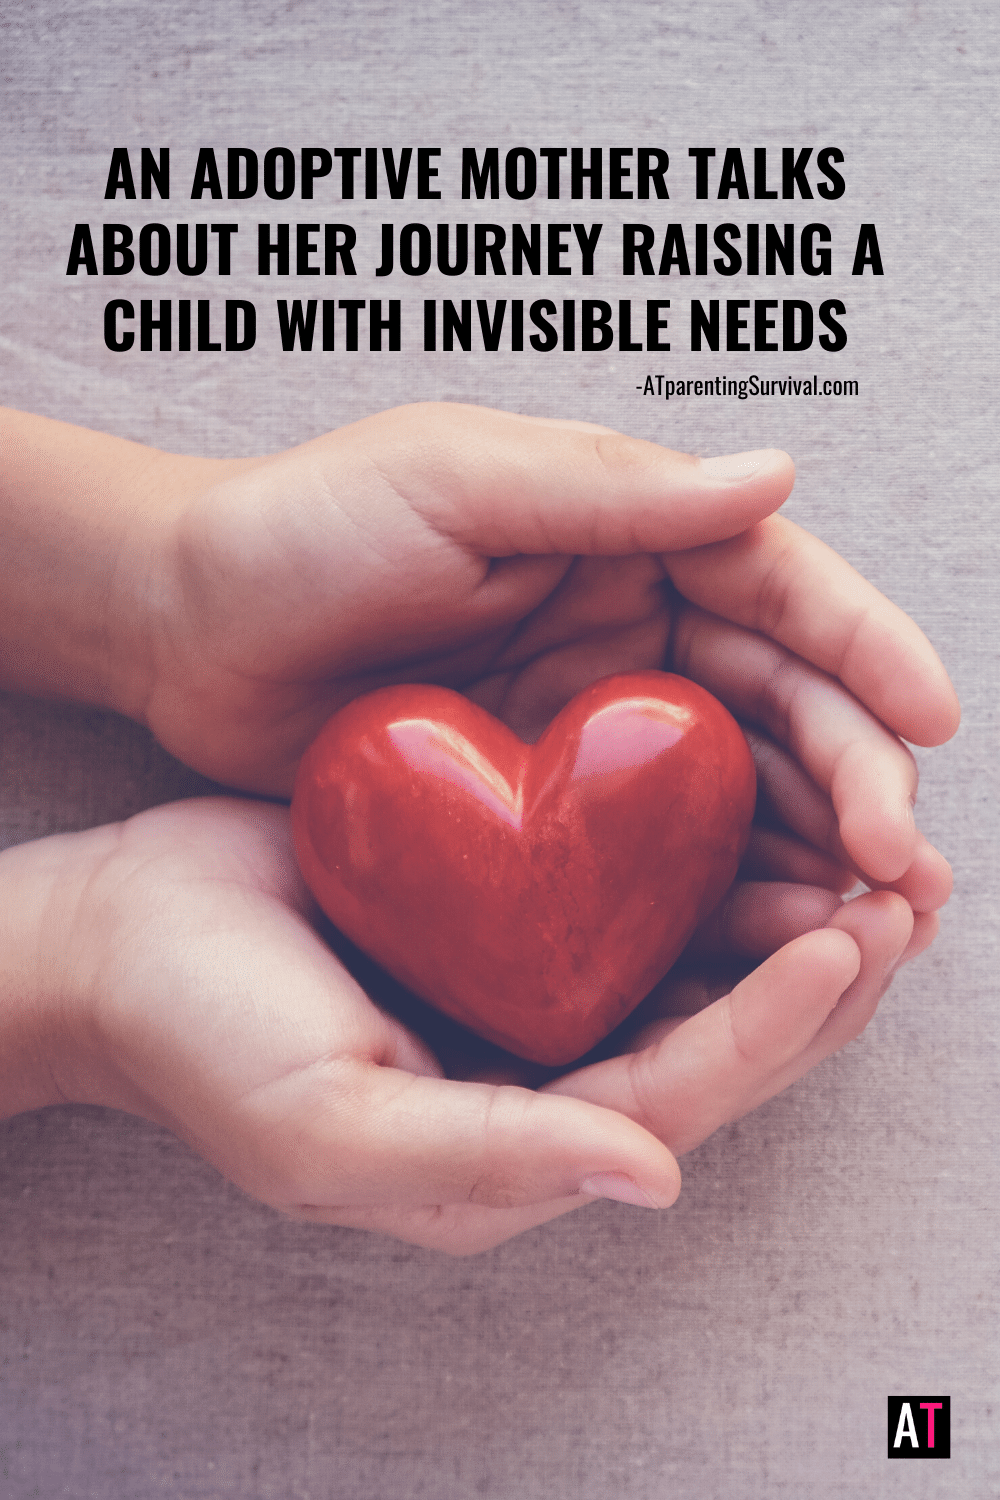 PSP 155: An Adoptive Mom Talks About her Journey Raising a Child with Invisible Needs